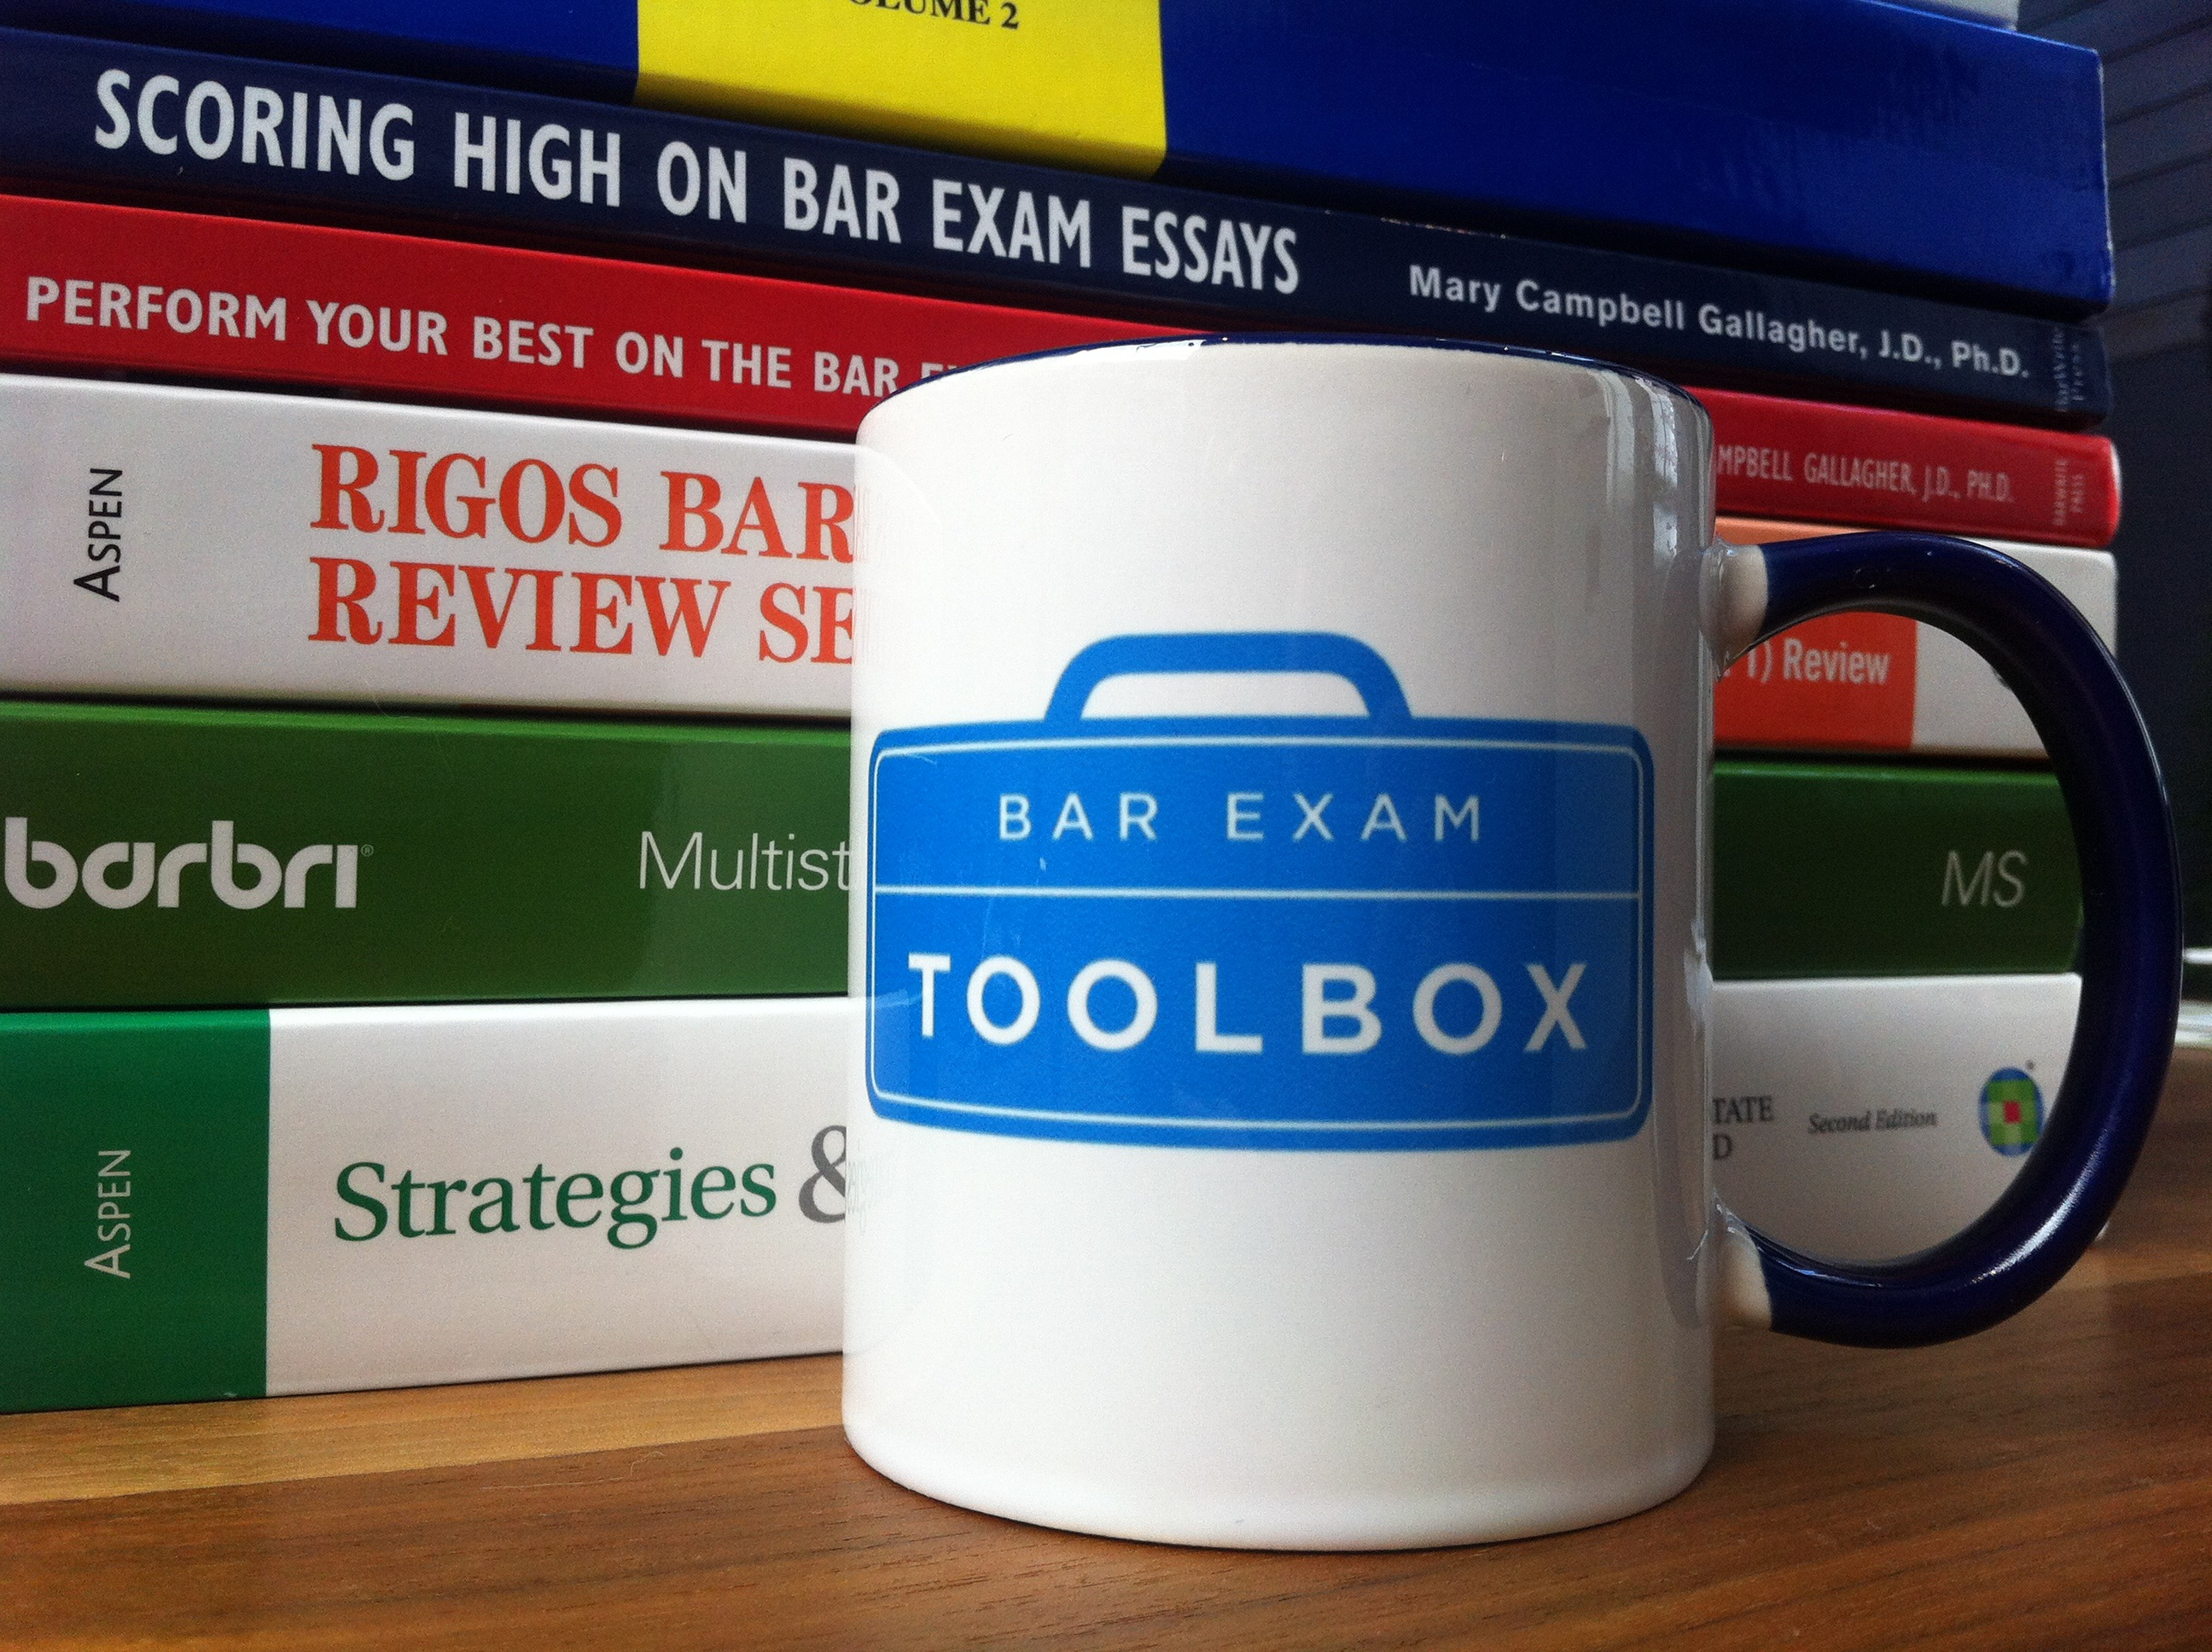 scoring high on bar exam essays book One that i think is helpful is by mary campbell gallagher it's called scoring high on bar exam essays review real student essays  i think that many students learn well from reviewing other student essays (both successful and not successful.